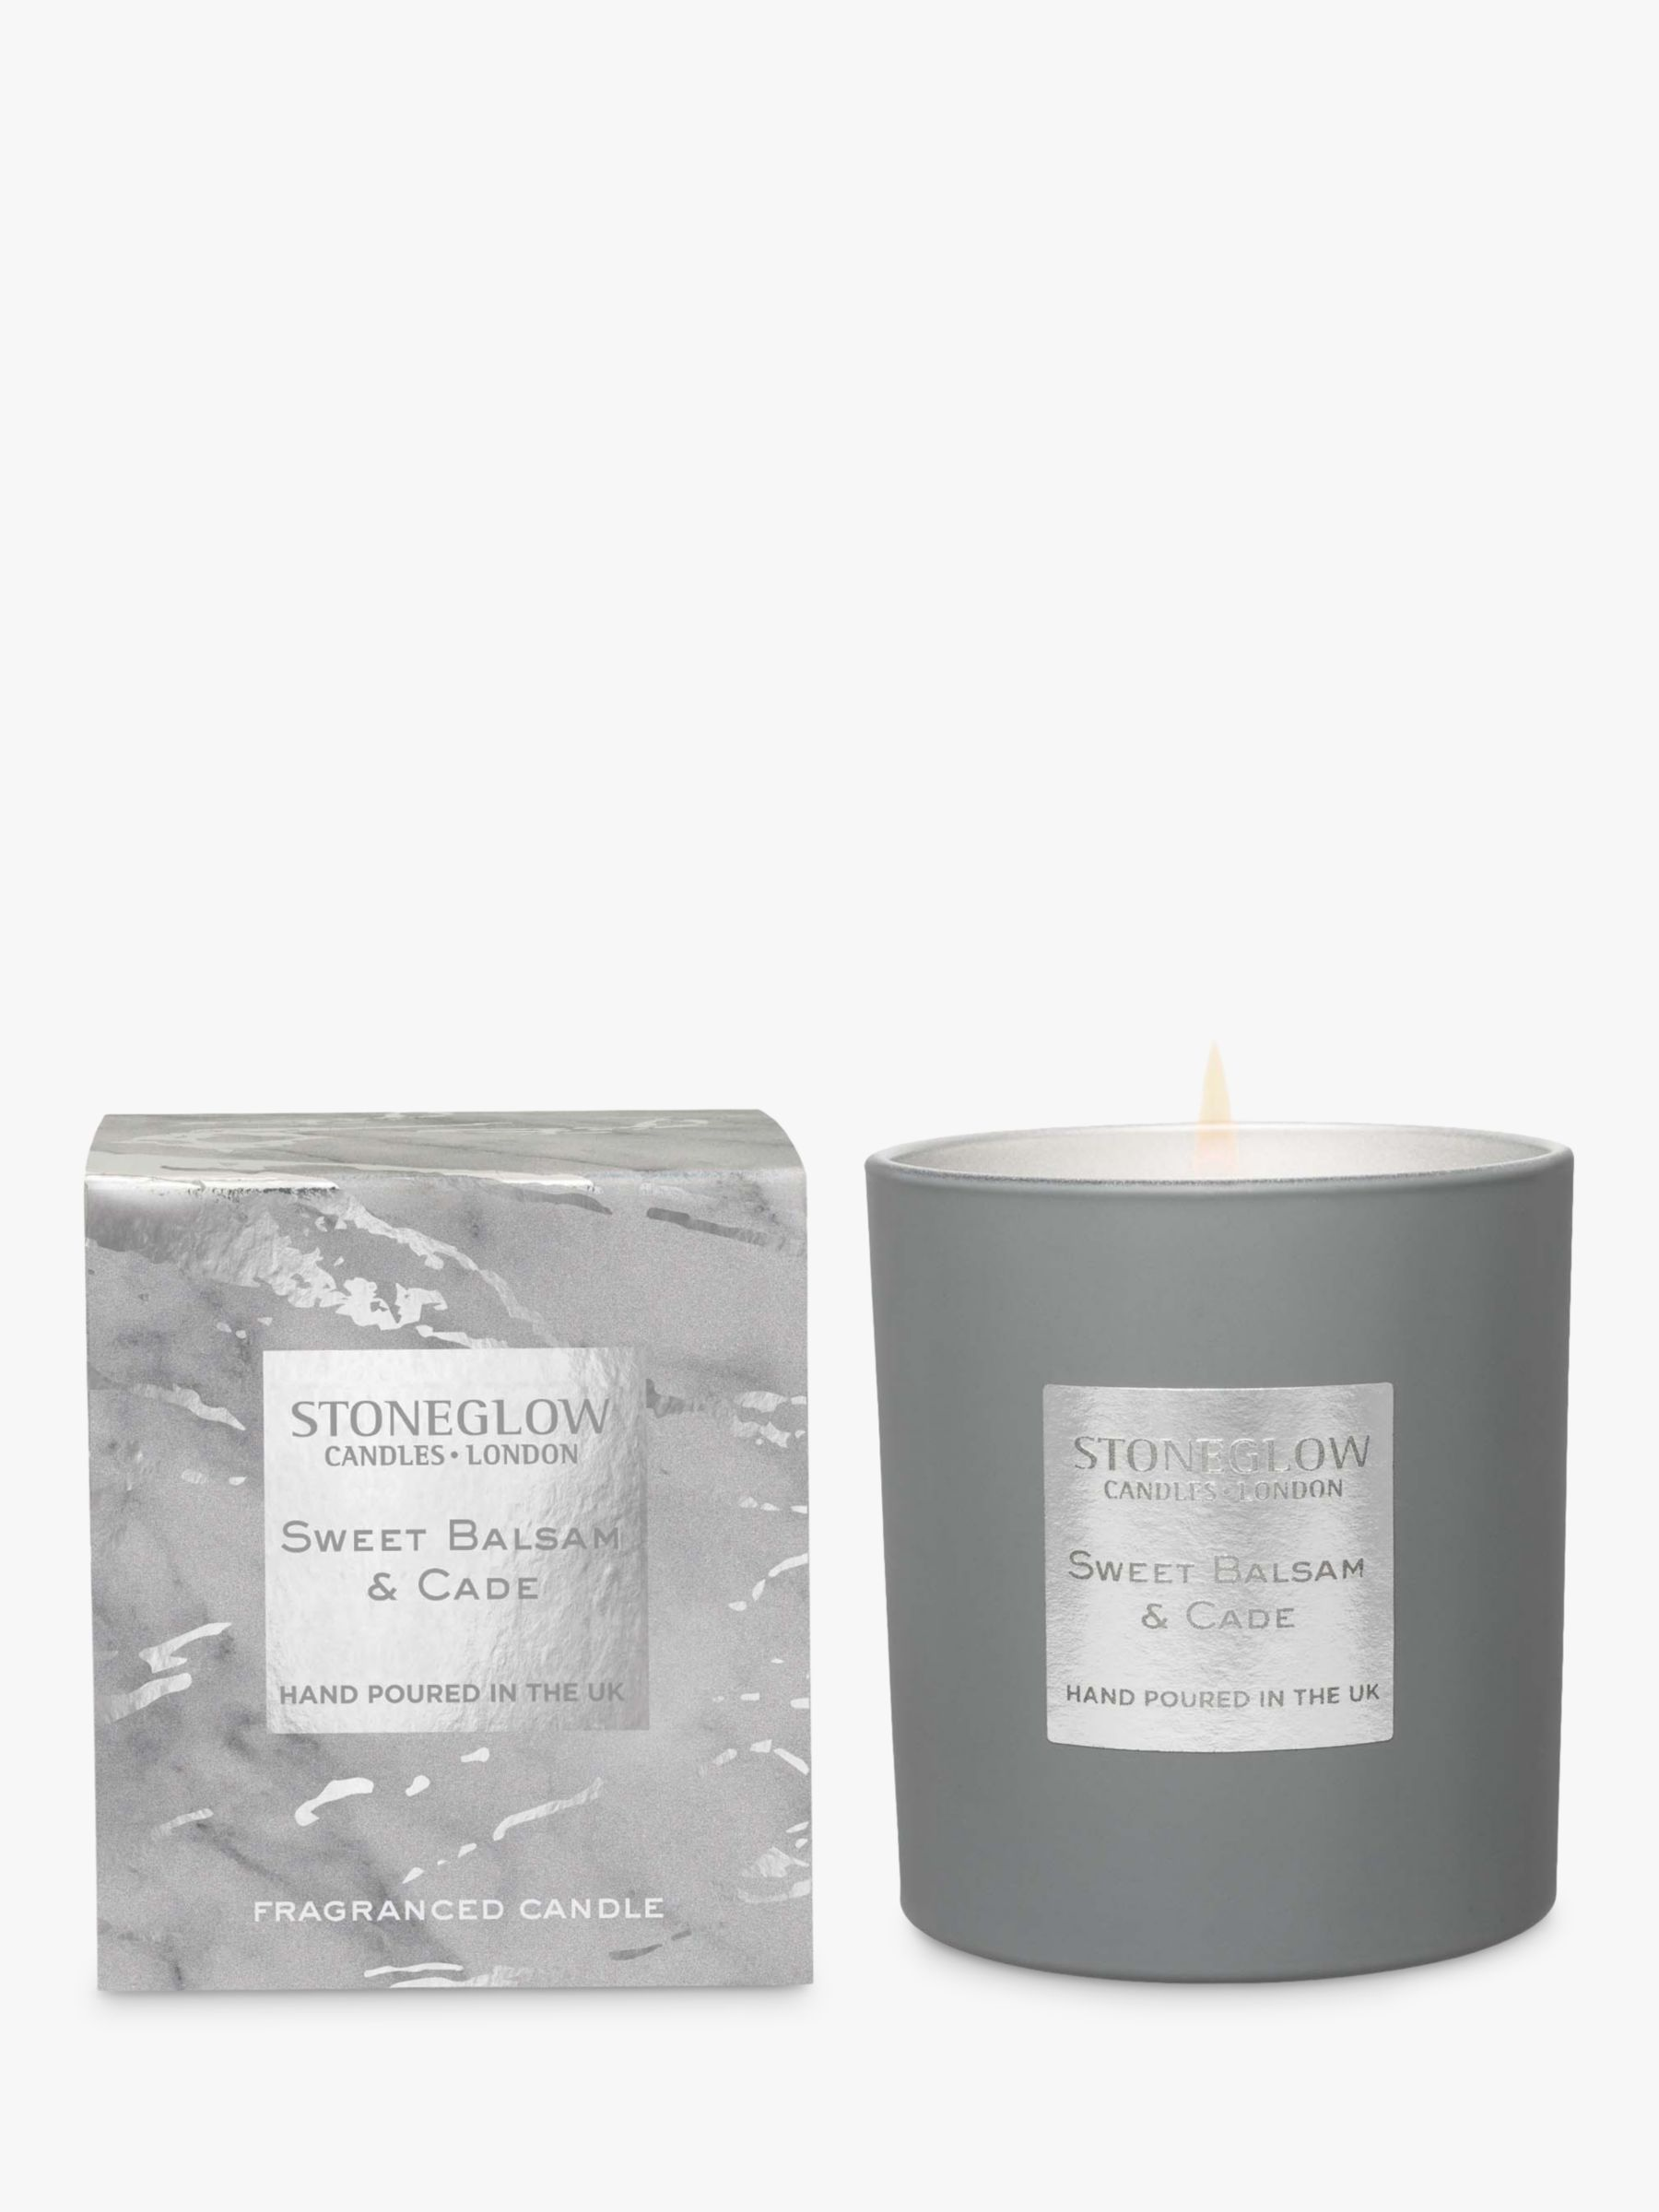 Stoneglow Stoneglow Luna Sweet Balsam & Cade Scented Candle, 220g